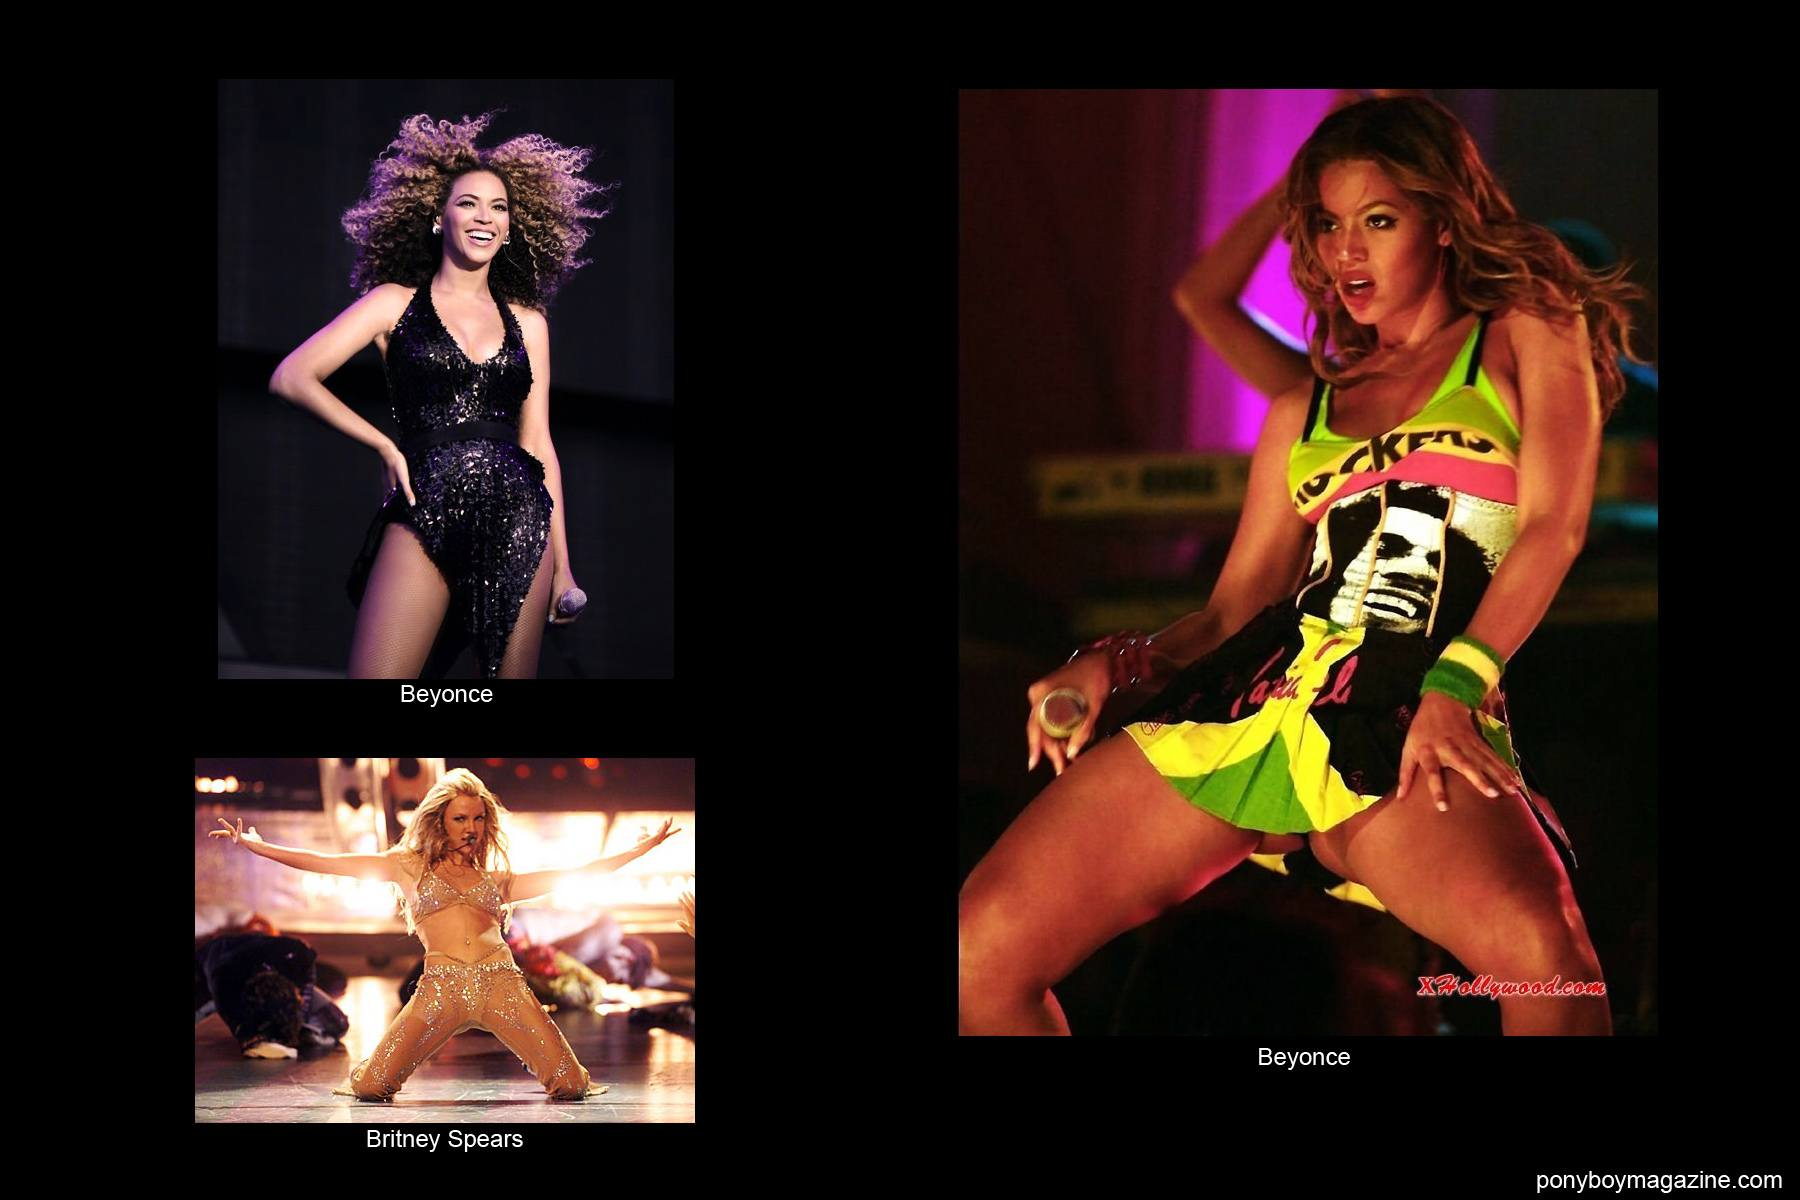 Beyonce and Britney Spears in David Dalrymple creations. Ponyboy Magazine.